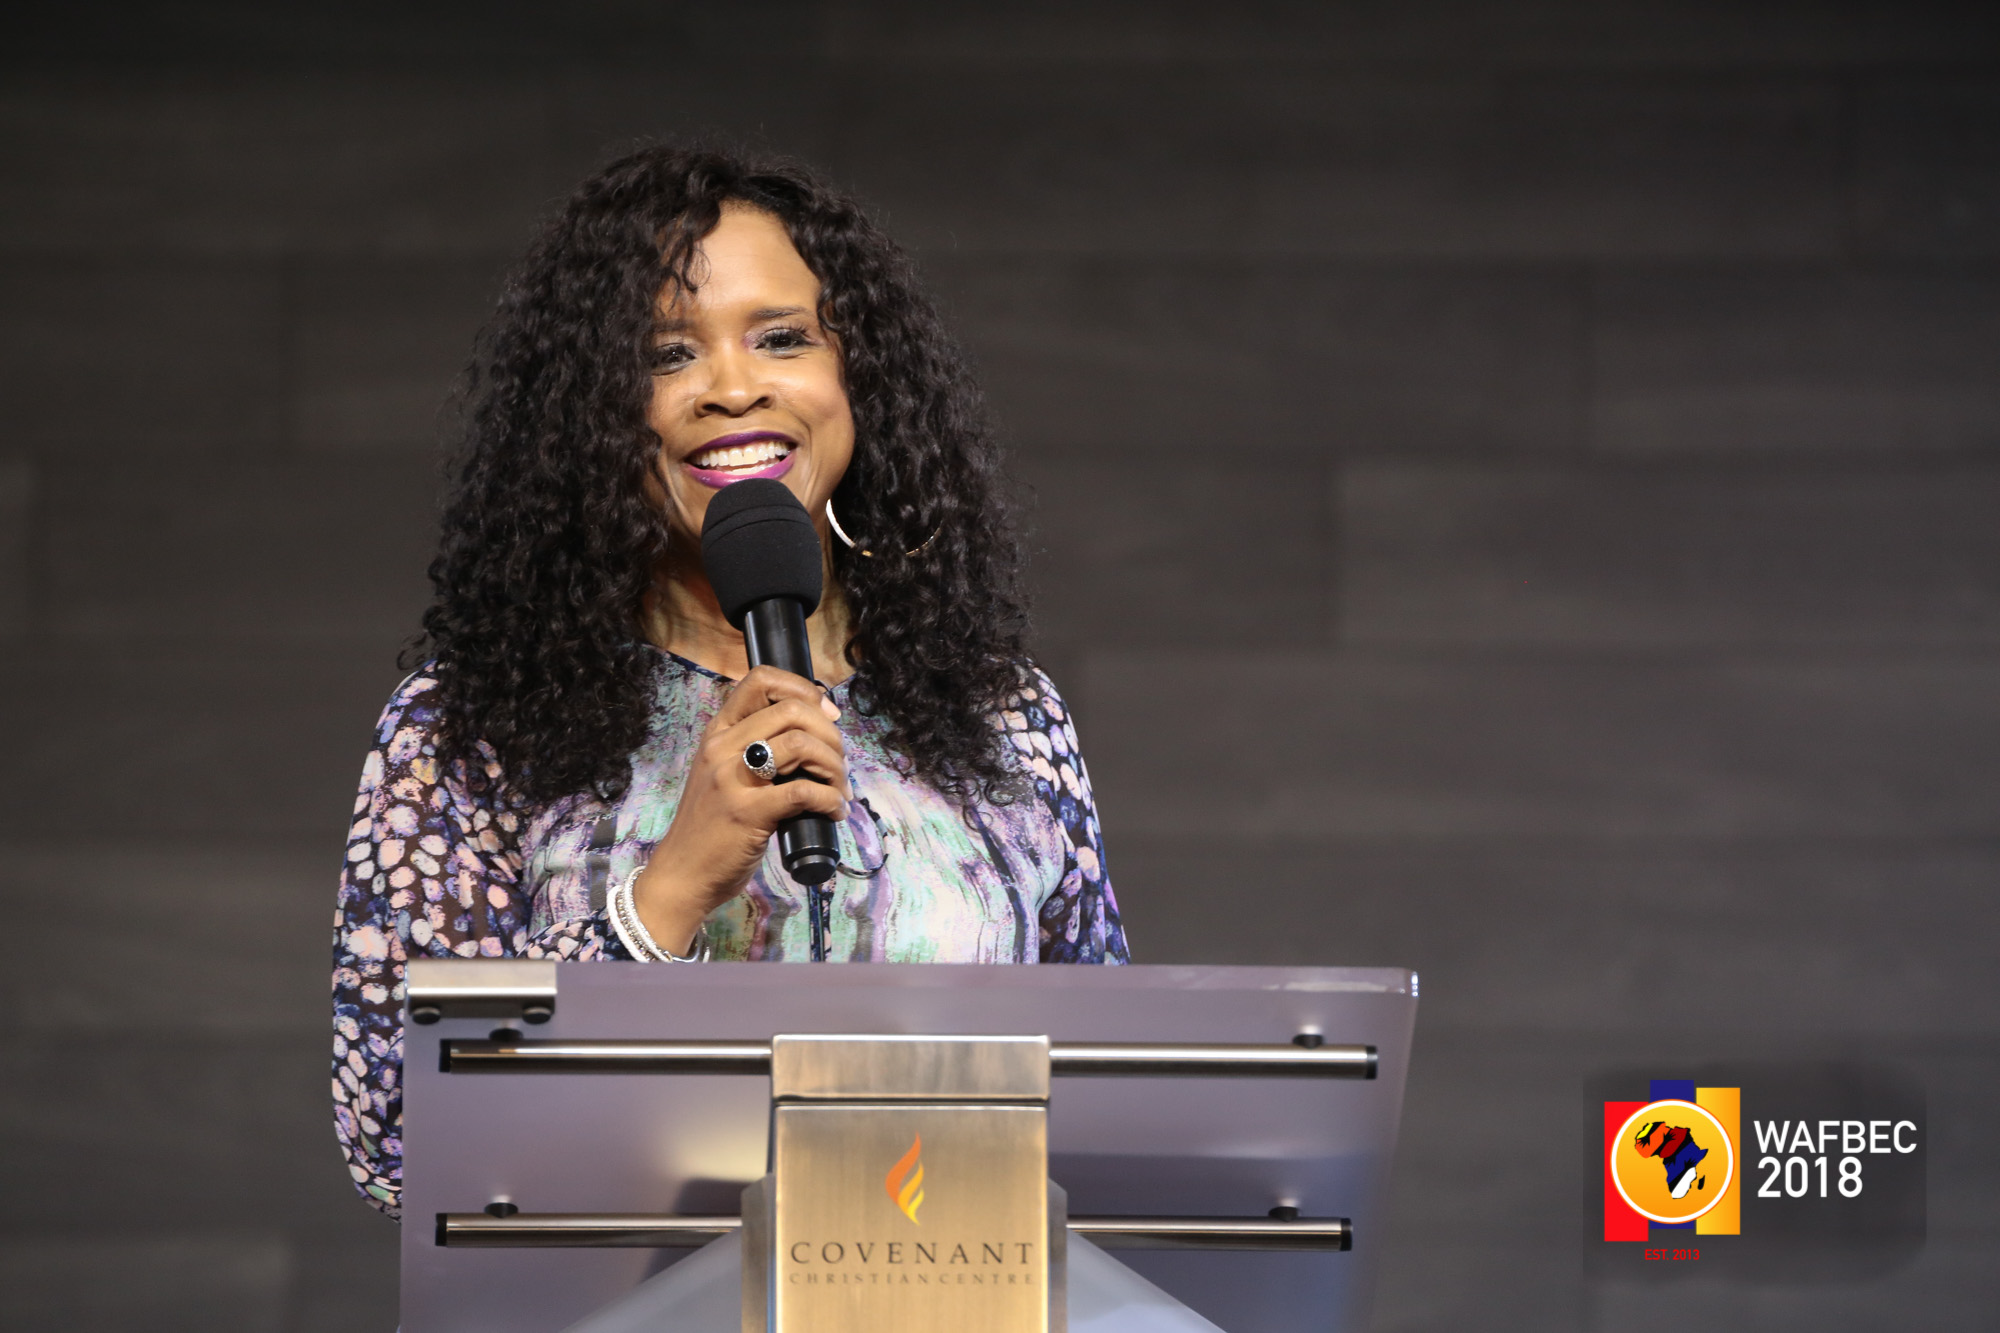 WAFBEC 2018 – Day 5 (Evening Session 1) with Pastor Taffi Dollar